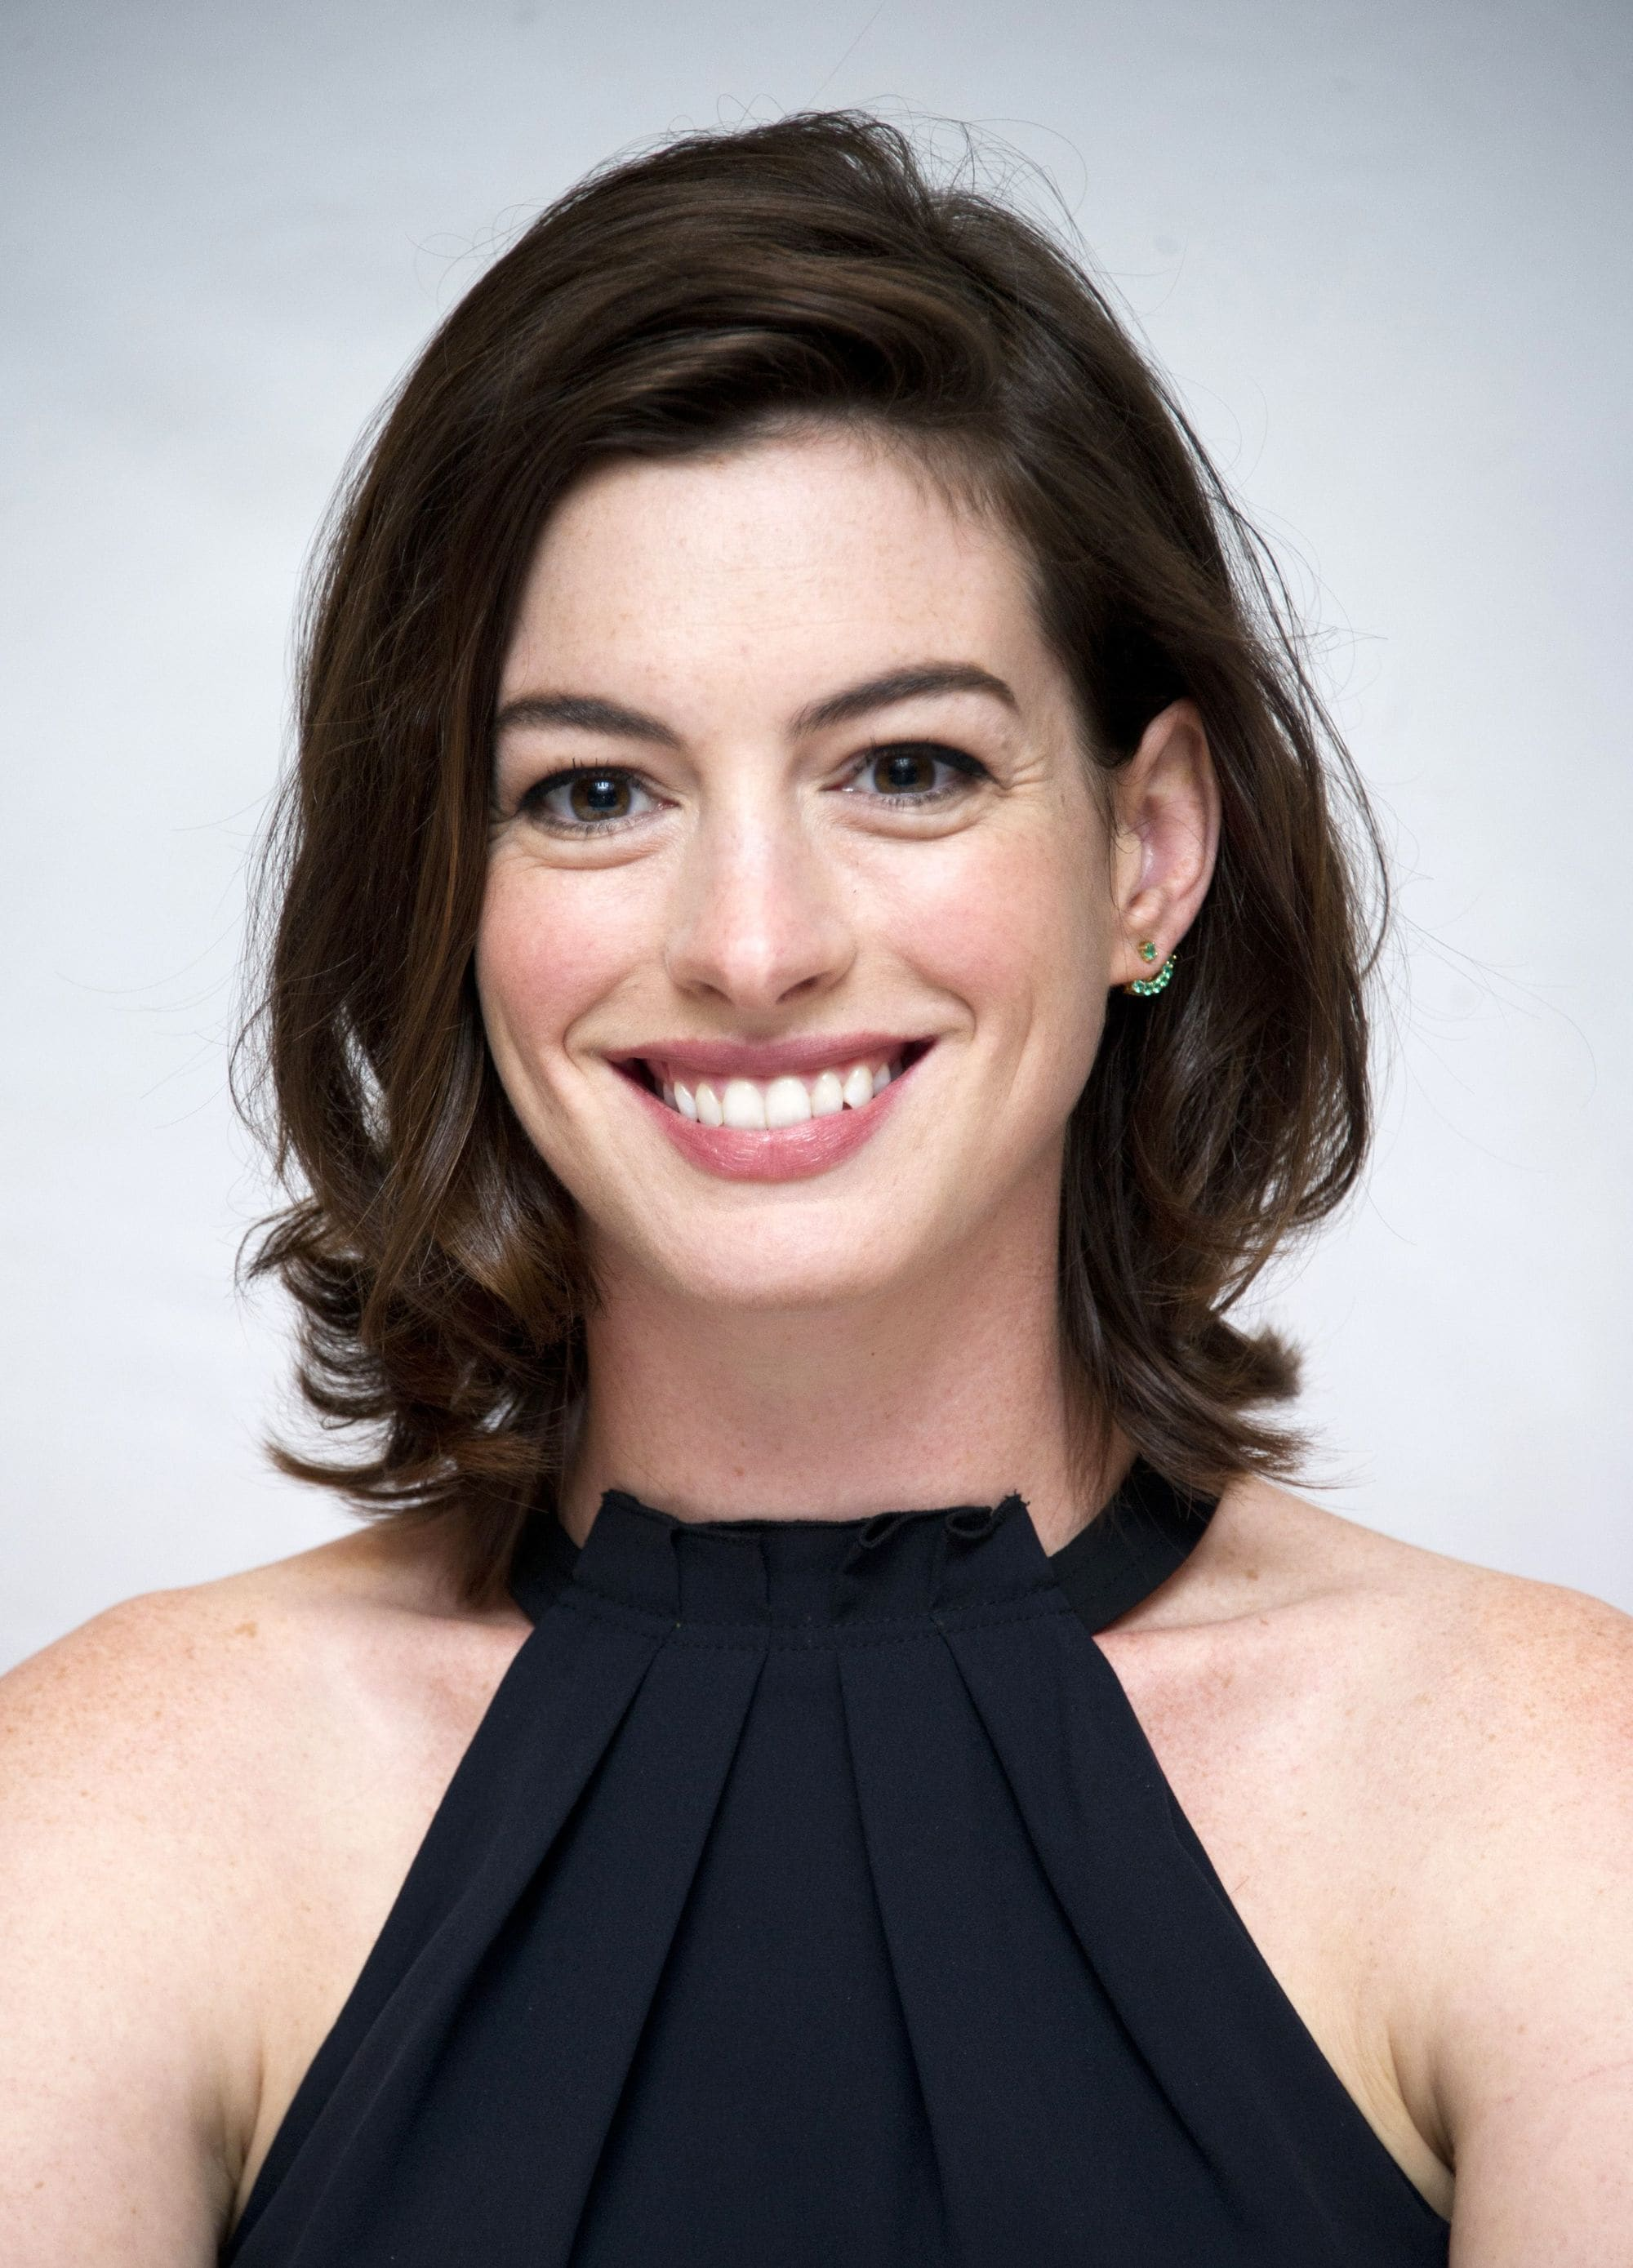 Shoulder length layered hair: actress anne hathaway with short shoulder length brunette hair and flicky layers